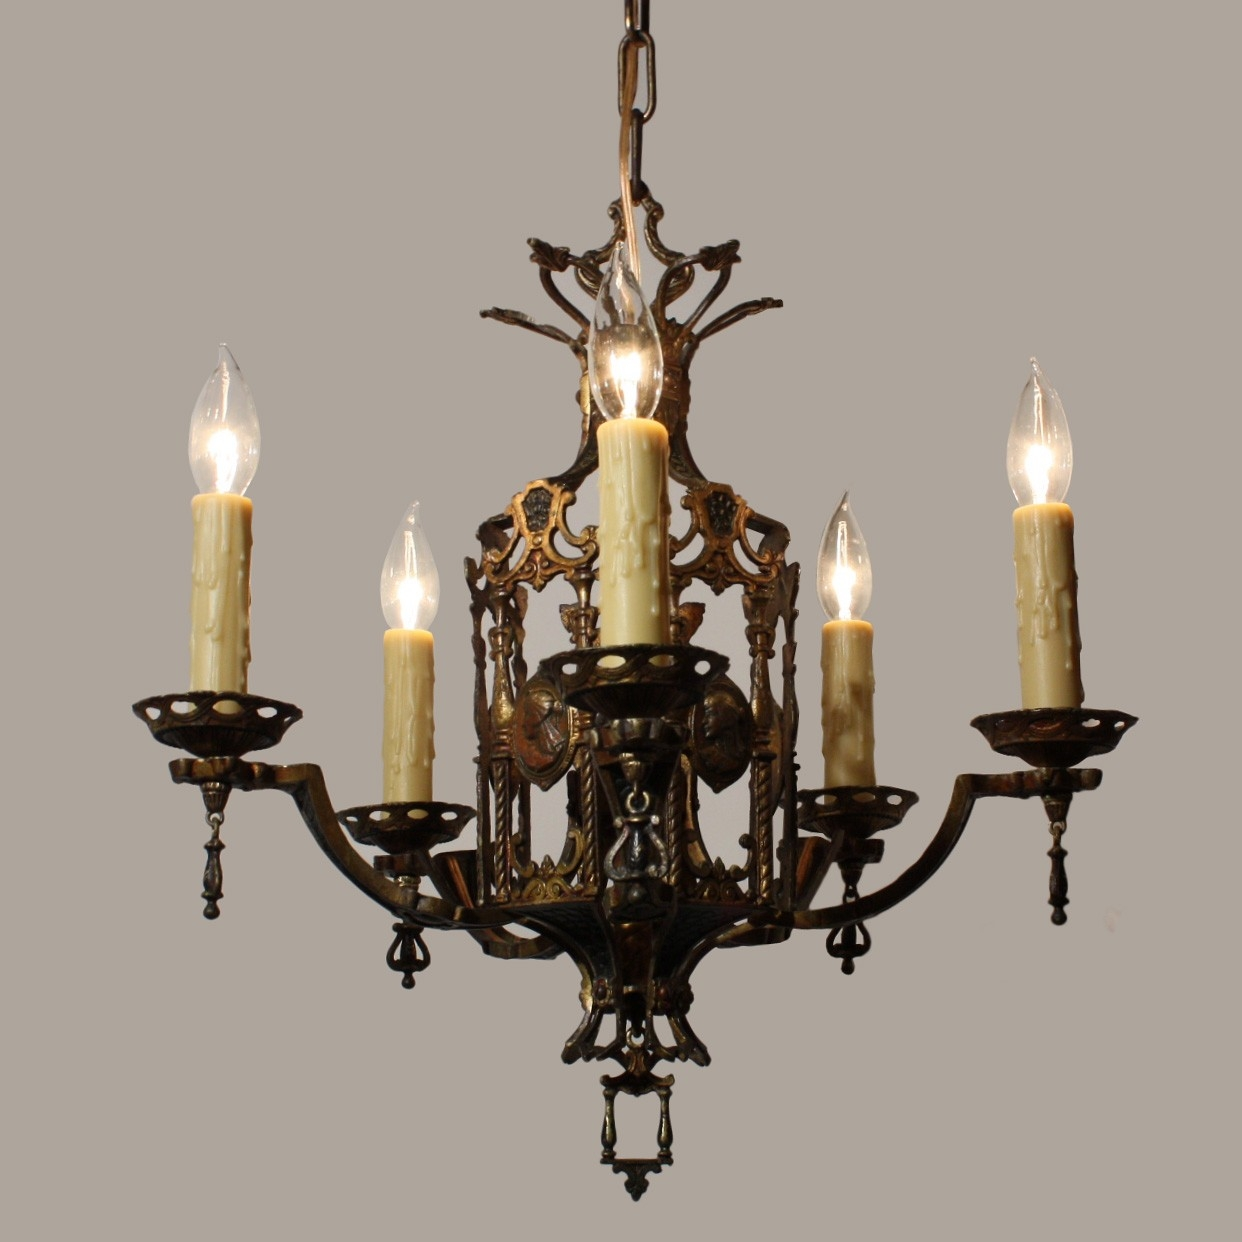 Stunning Antique Egyptian Revival Figural Chandelier With Cameos Inside Egyptian Chandelier (View 5 of 12)